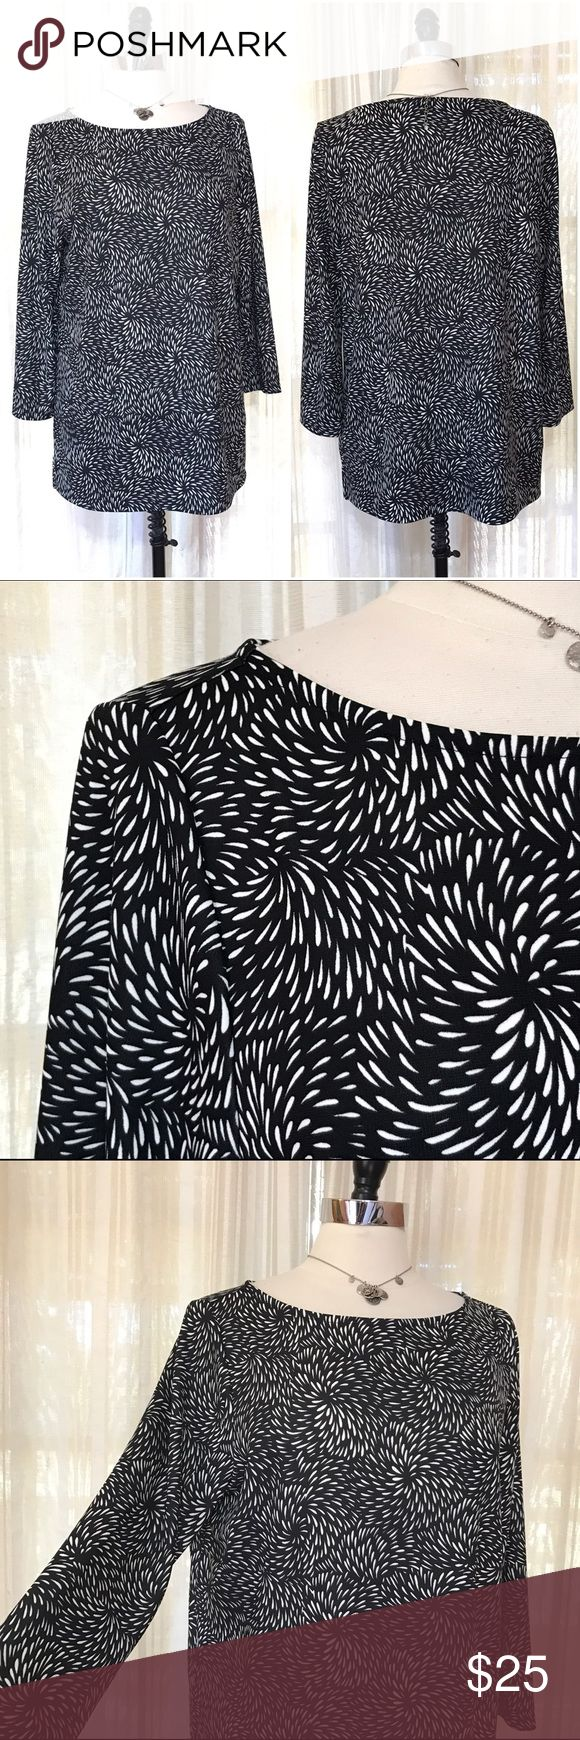 NEW LISTING💜Talbots Black white Flower Burst Top Size large. Pullover tunic style with boatneck. 3/4 sleeves. Side splits. $59.50 NWT (2.20.0)  💟Fast 1-2 day shipping 💟Reasonable offers accepted 💟Purchase 3 or more items & get a special bundle rate!  💟Smoke-free home Talbots Tops Tunics